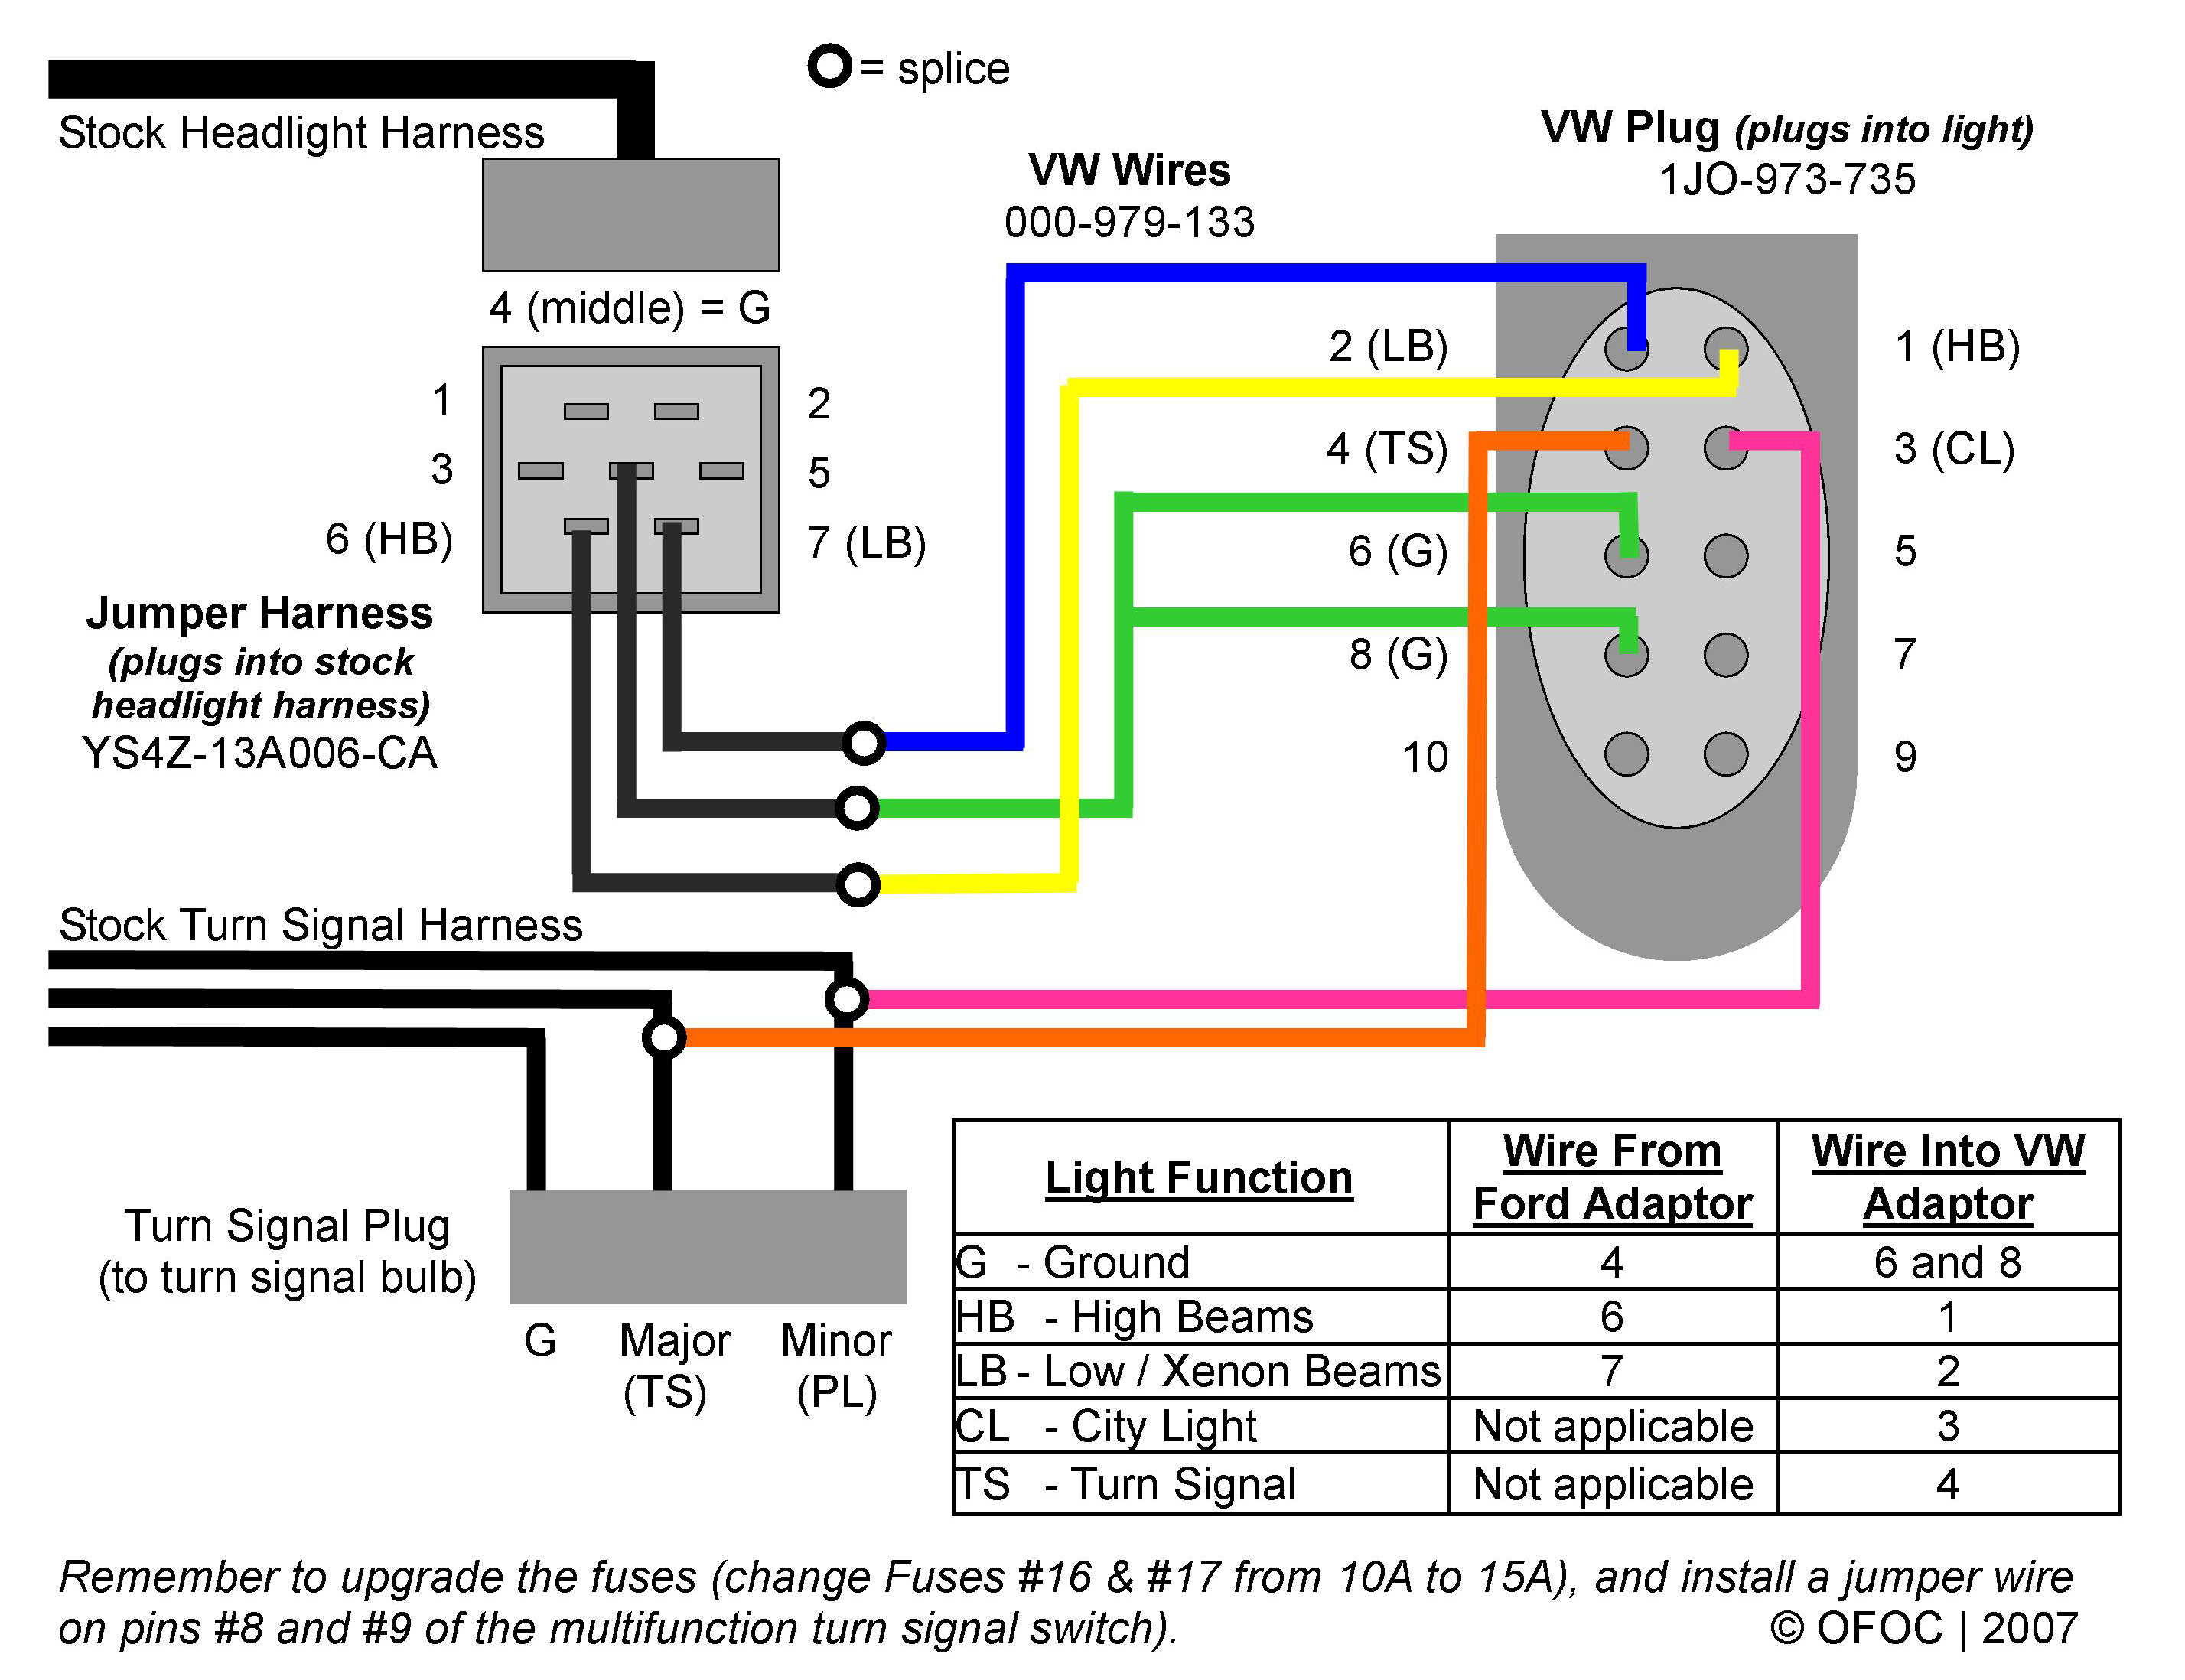 Vw Hid Wiring Diagram - Wiring Diagram 500 Wiring Diagram For Ke Light Switch on